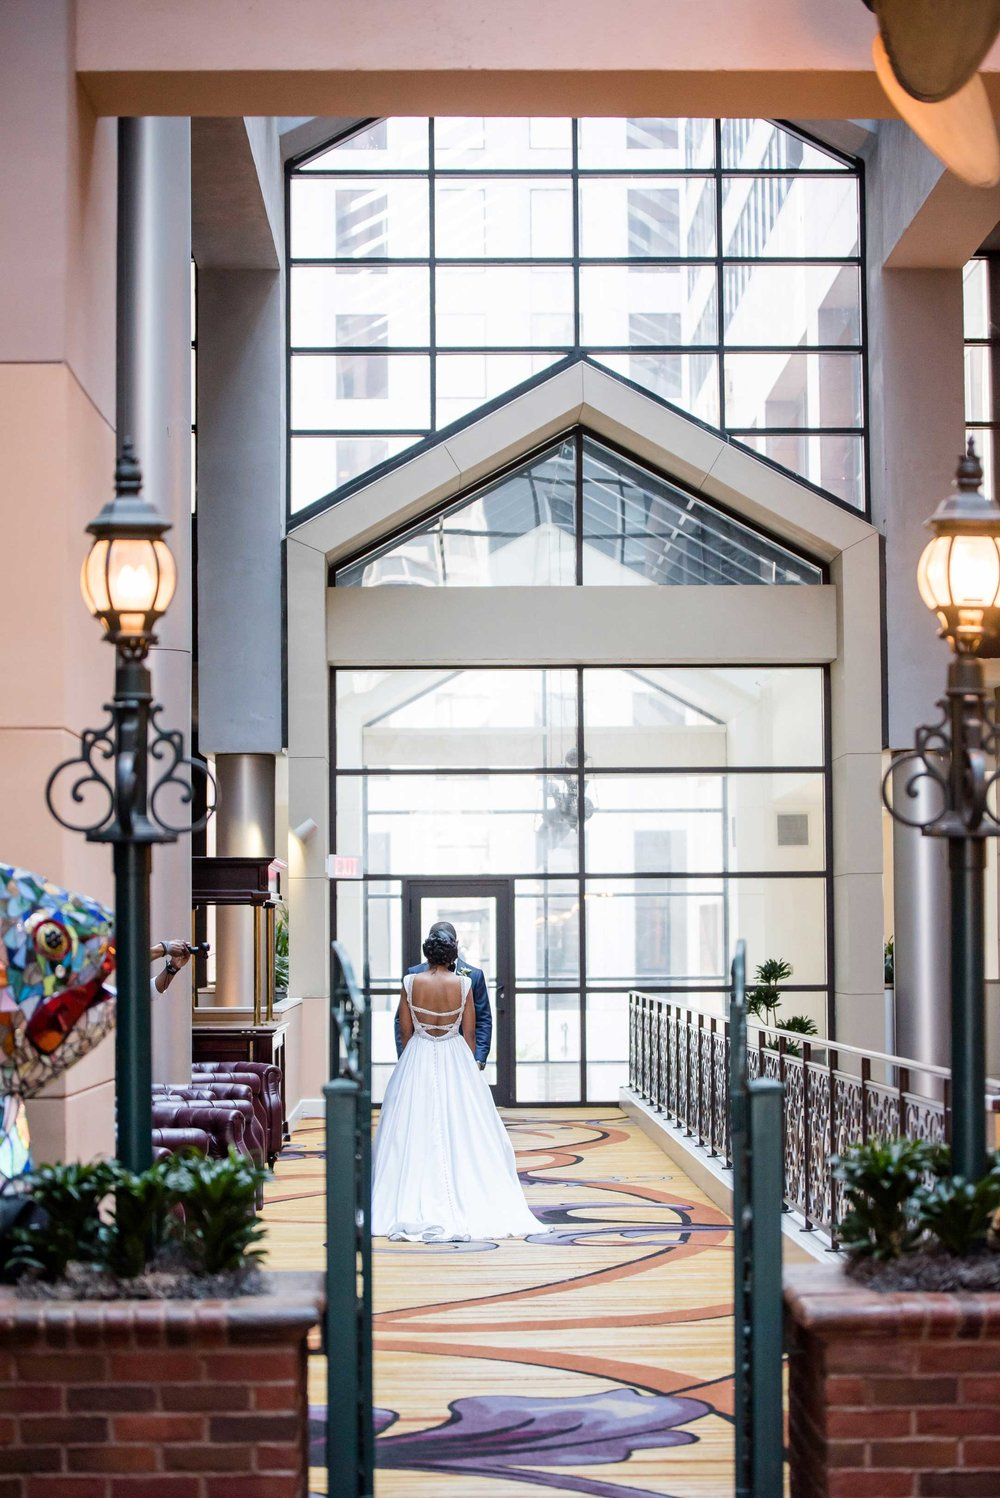 ronnie-bliss-new-orleans-wedding-photographer-223.jpg